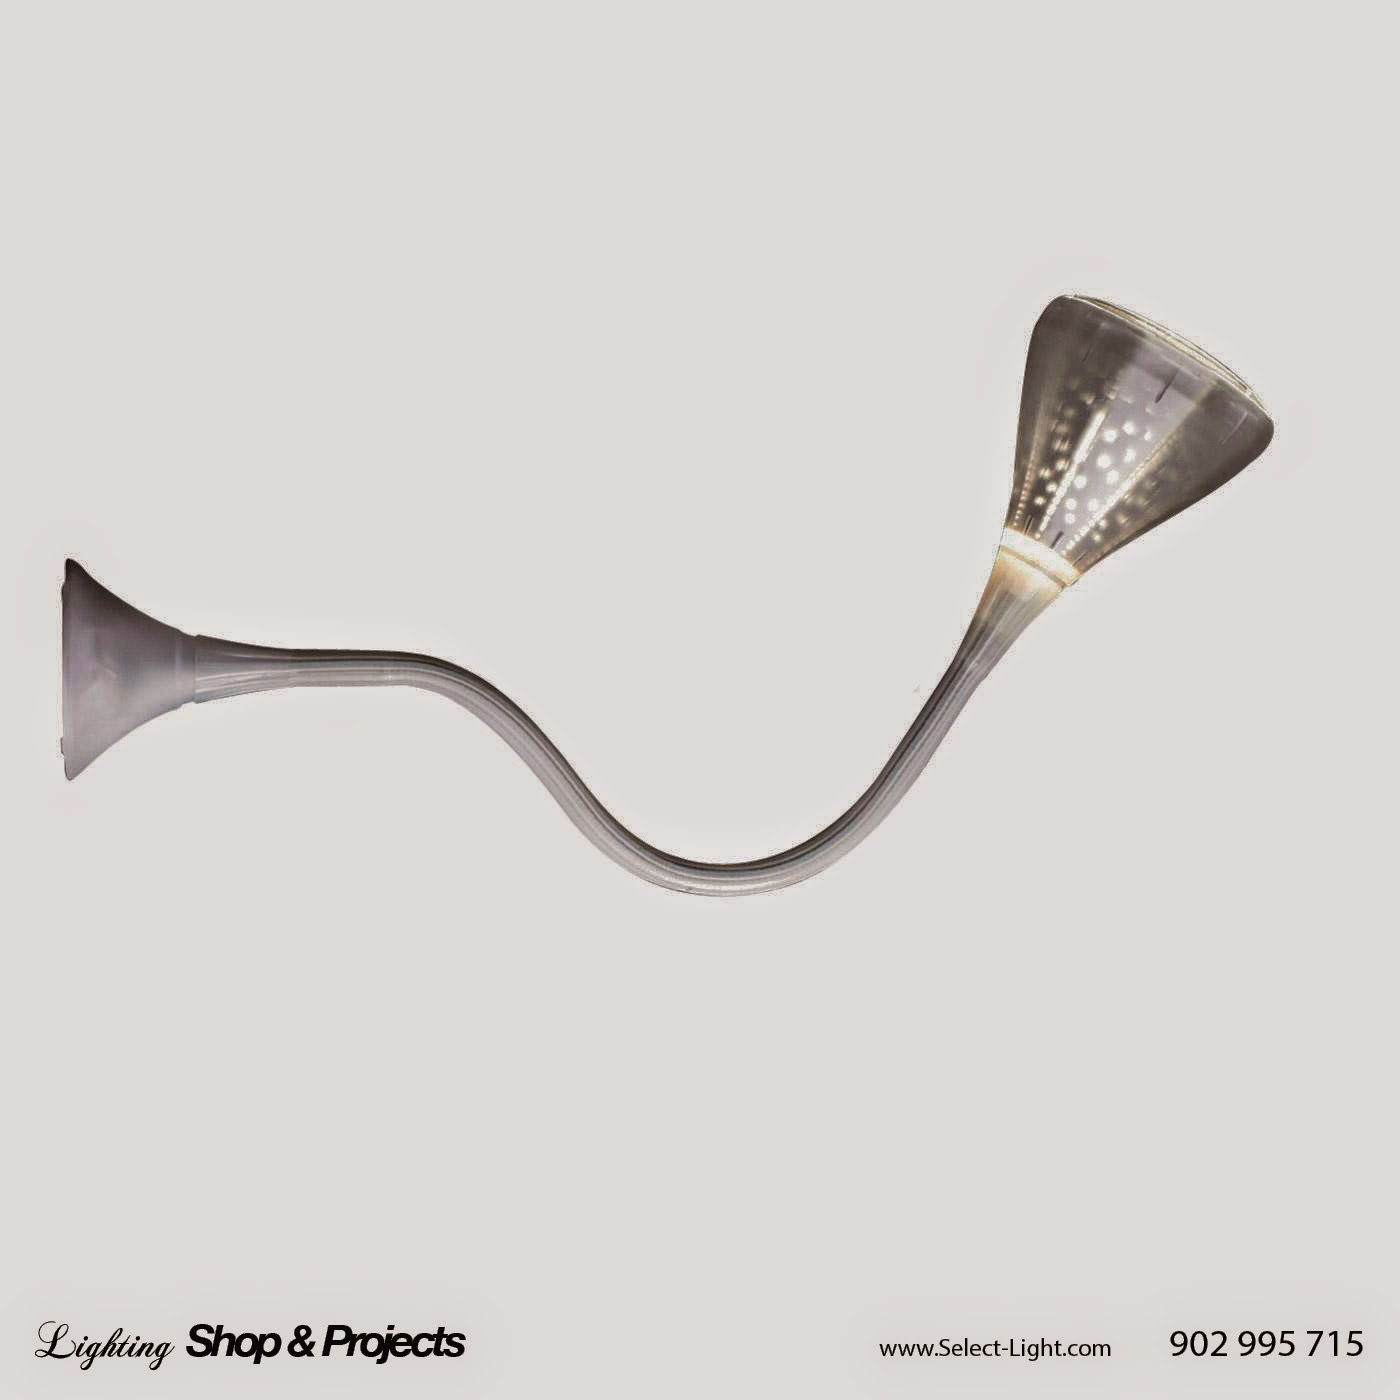 Pipe lamp by Jacques Herzog y Pierre de Meuron